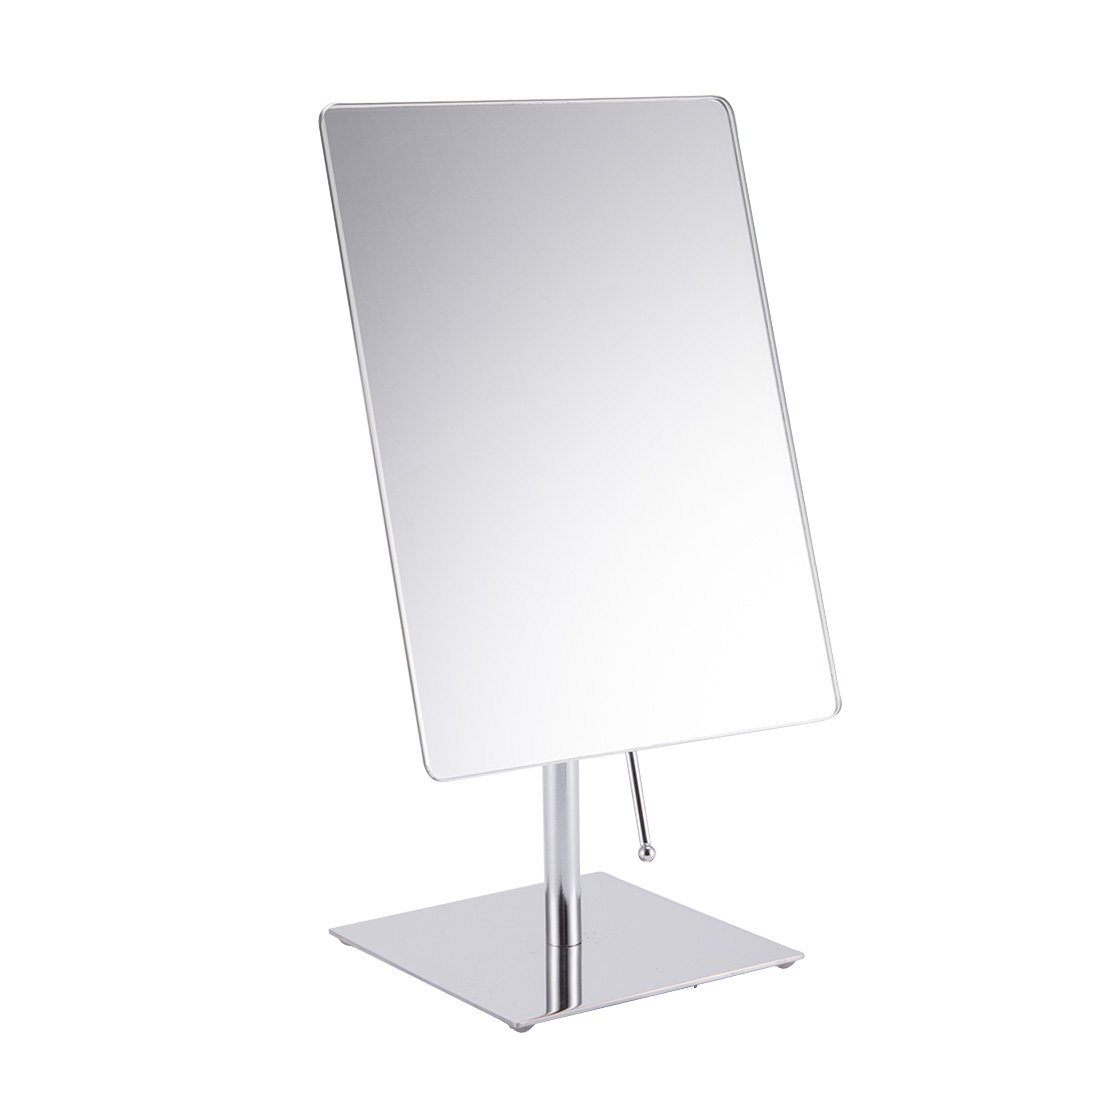 FIRMLOC Non-magnifying Vanity Mirror, Makeup Mirror Adjustable Rectangular Tabletop Mirror, Rectangular Glass Surface 9 inch x 6.5 inch, Portable Polished Chrome Contemporary Finished